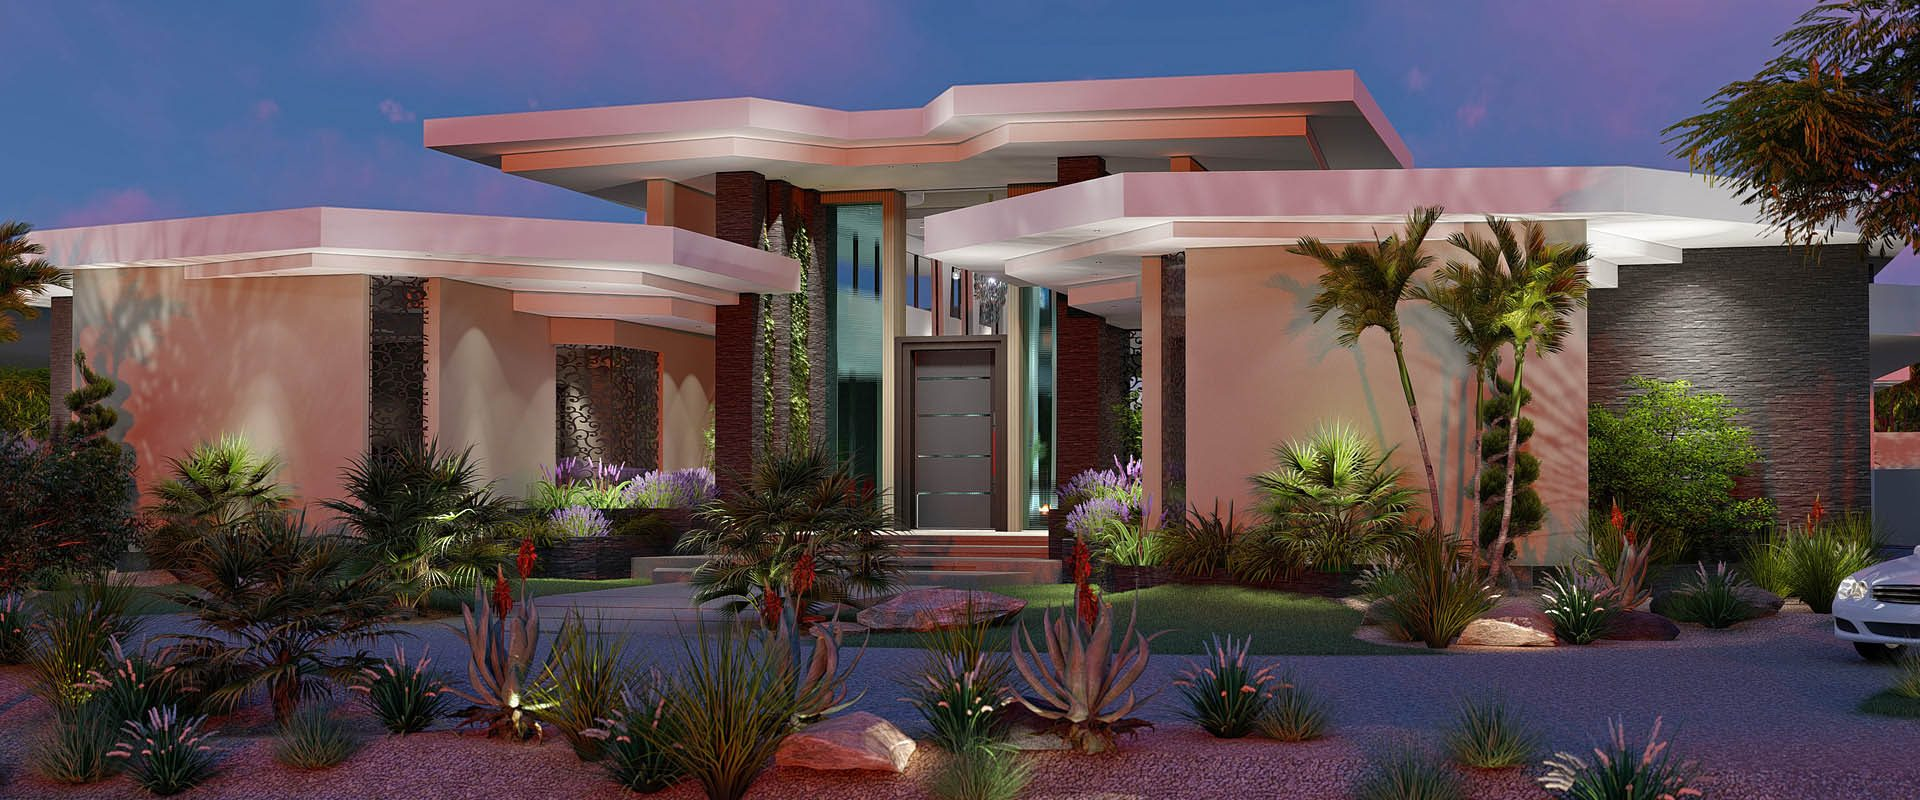 Phoenix_Modern_Residential_Design_SpaceLineD.jpg